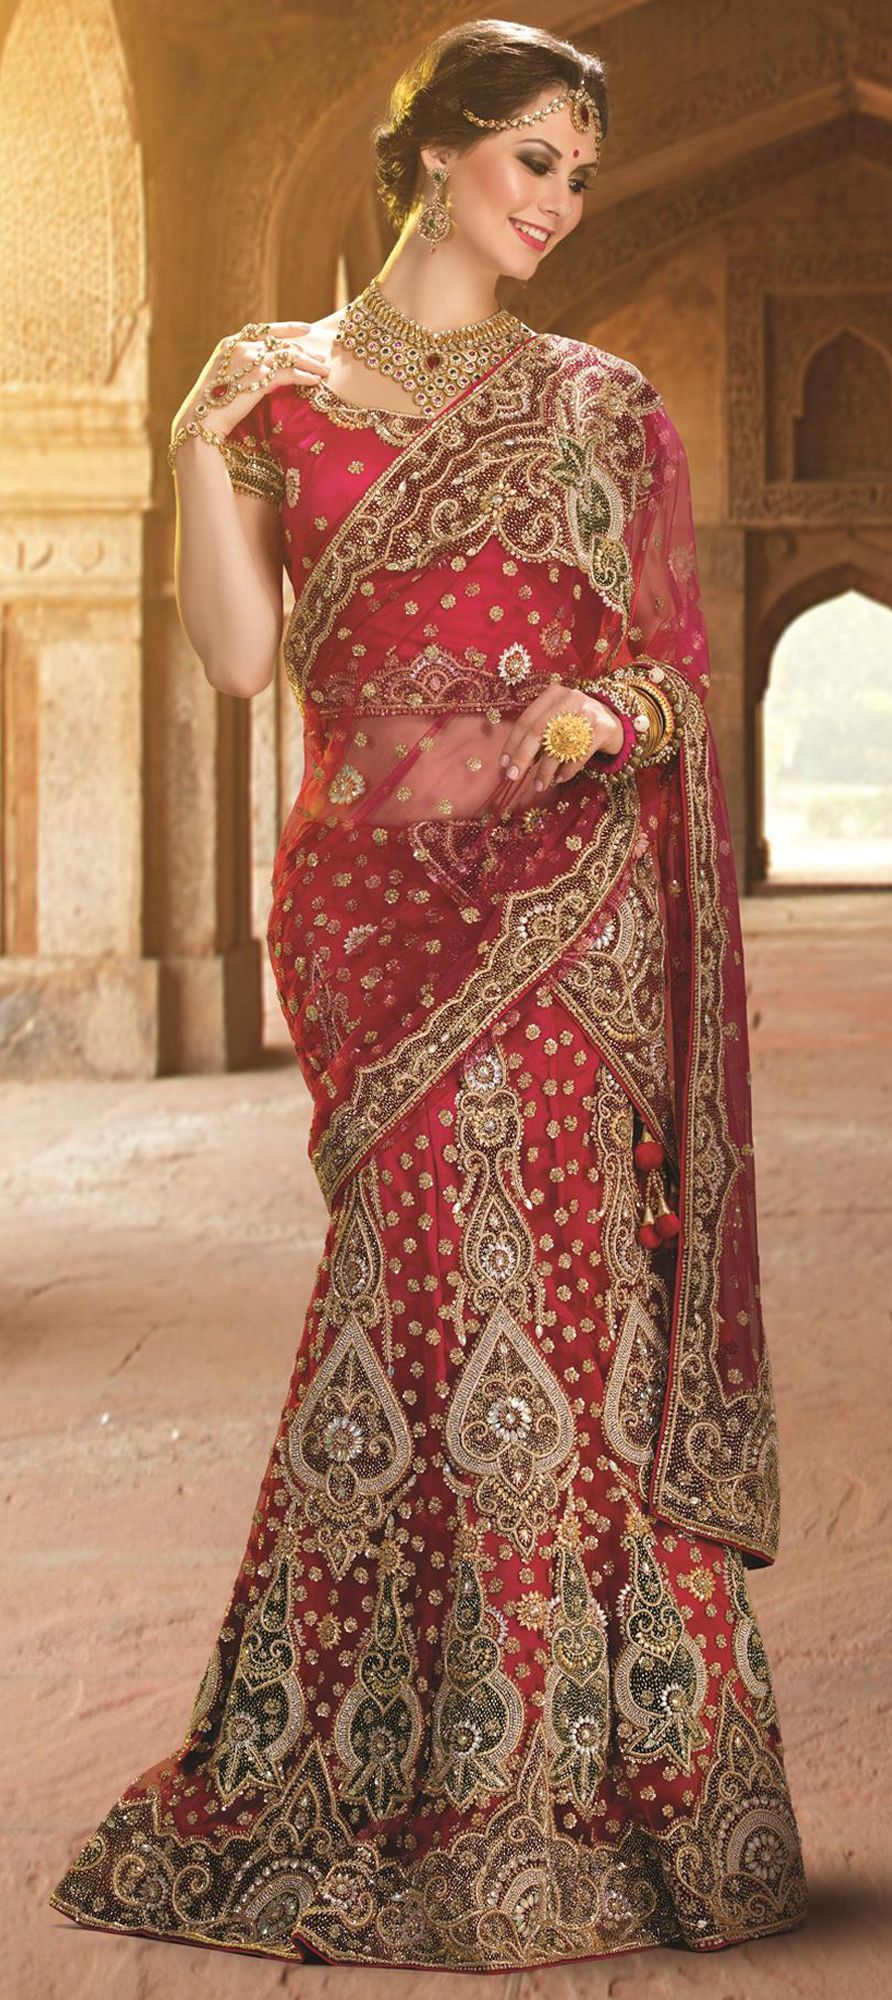 175387: Orange,Red and Maroon color family Bridal Lehenga,Wedding ...